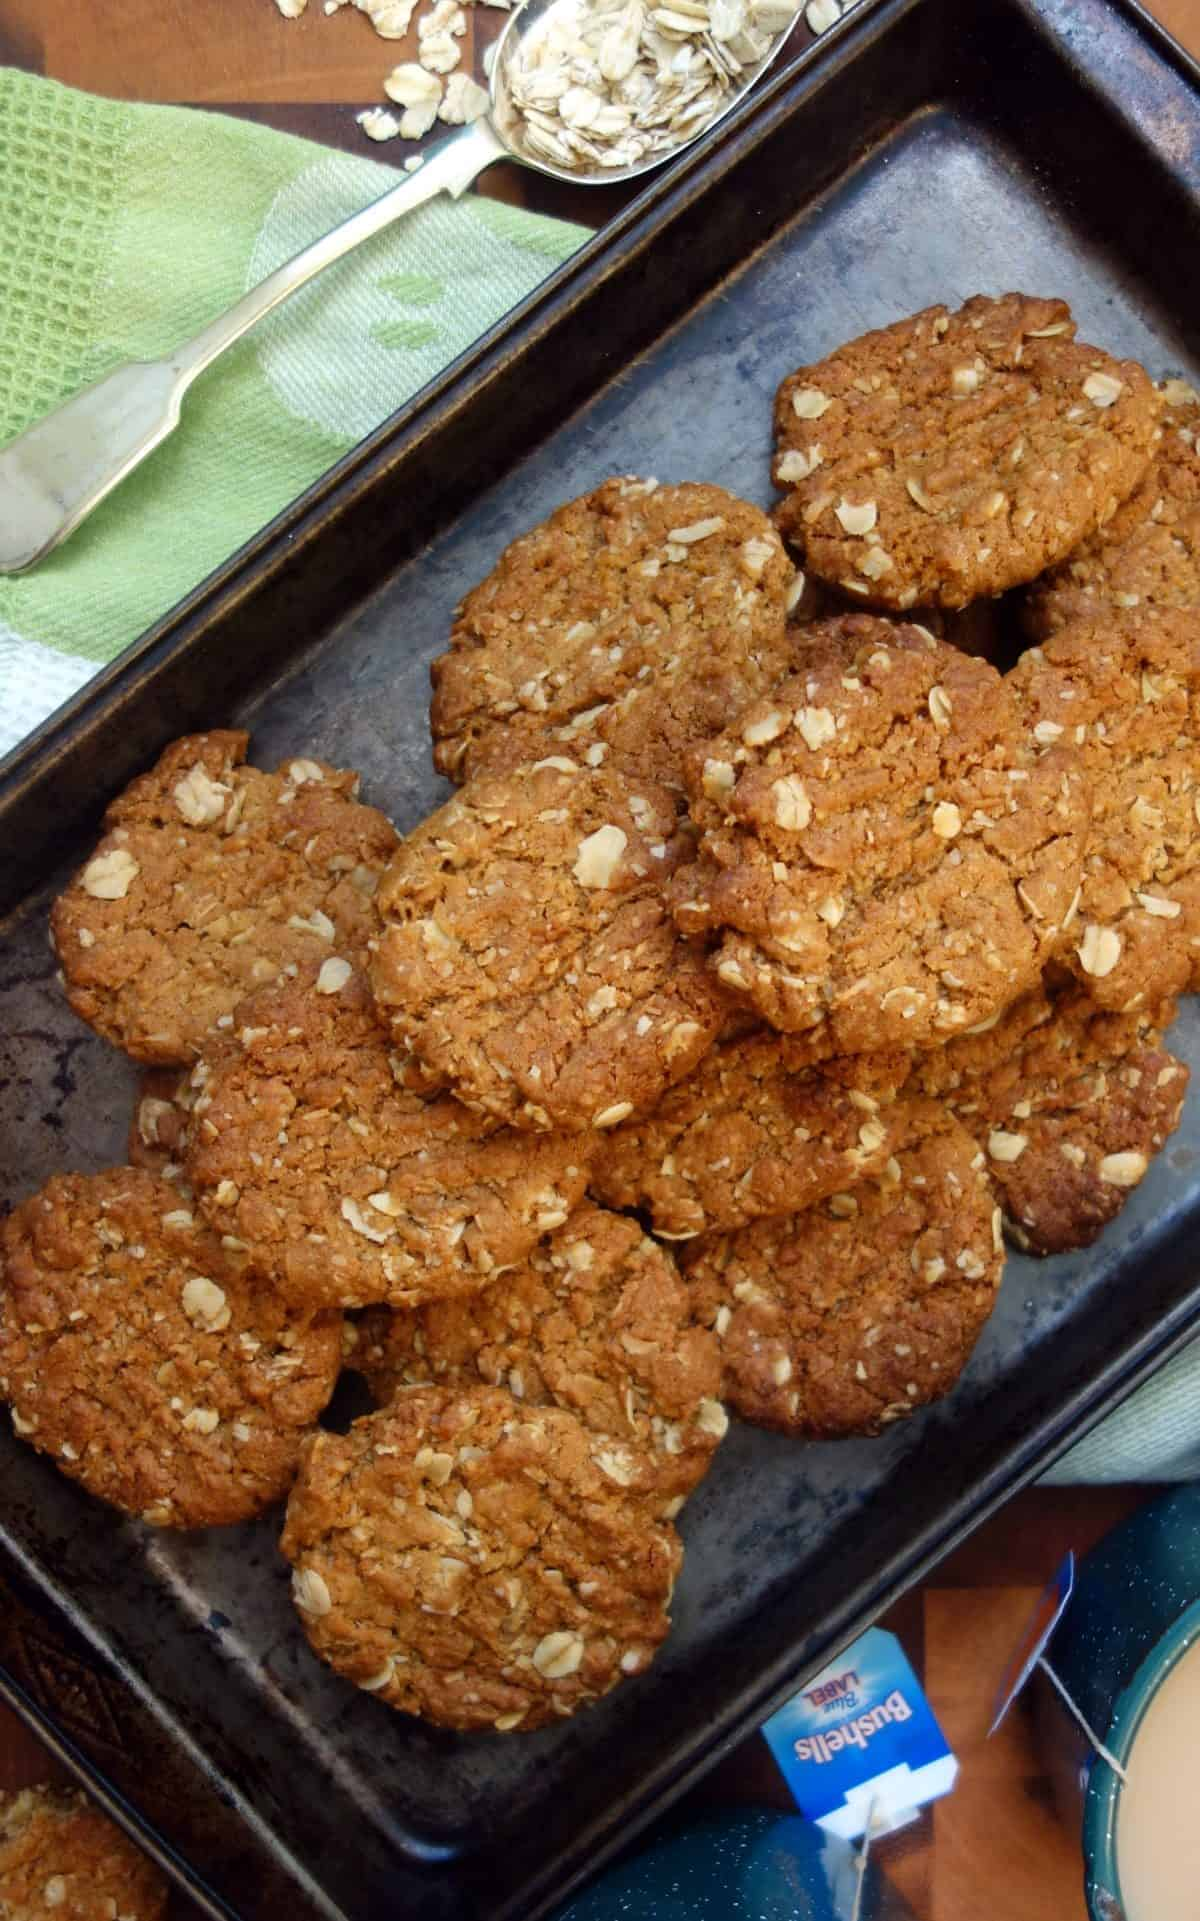 Overhead view of Anzac Biscuits in dark coloured baking tray